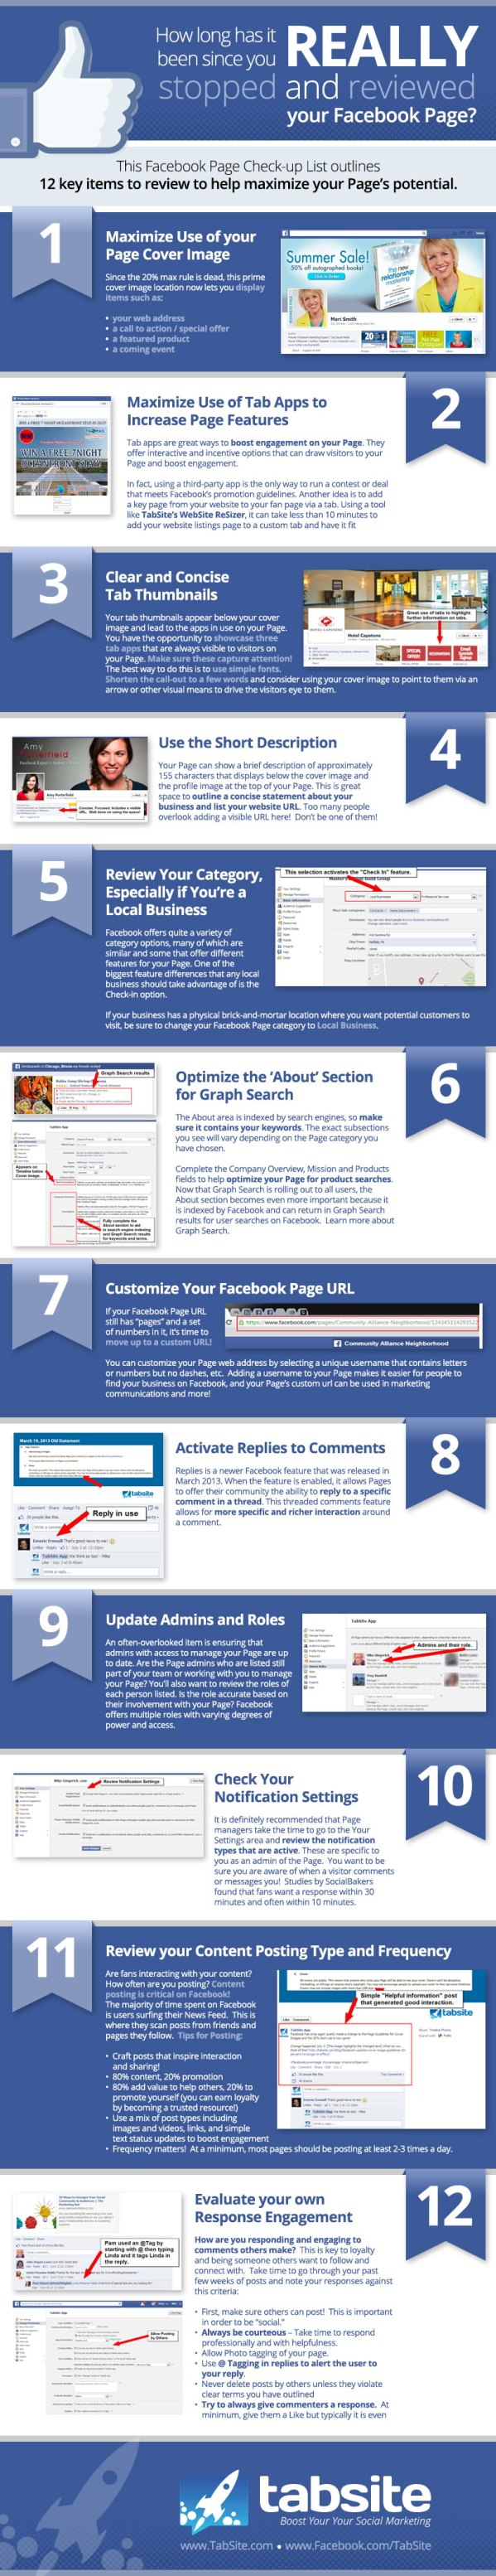 12 Facebook Page Items to Review Checklist Facebook Page Checkup Guide [INFOGRAPHIC CHECKLIST]